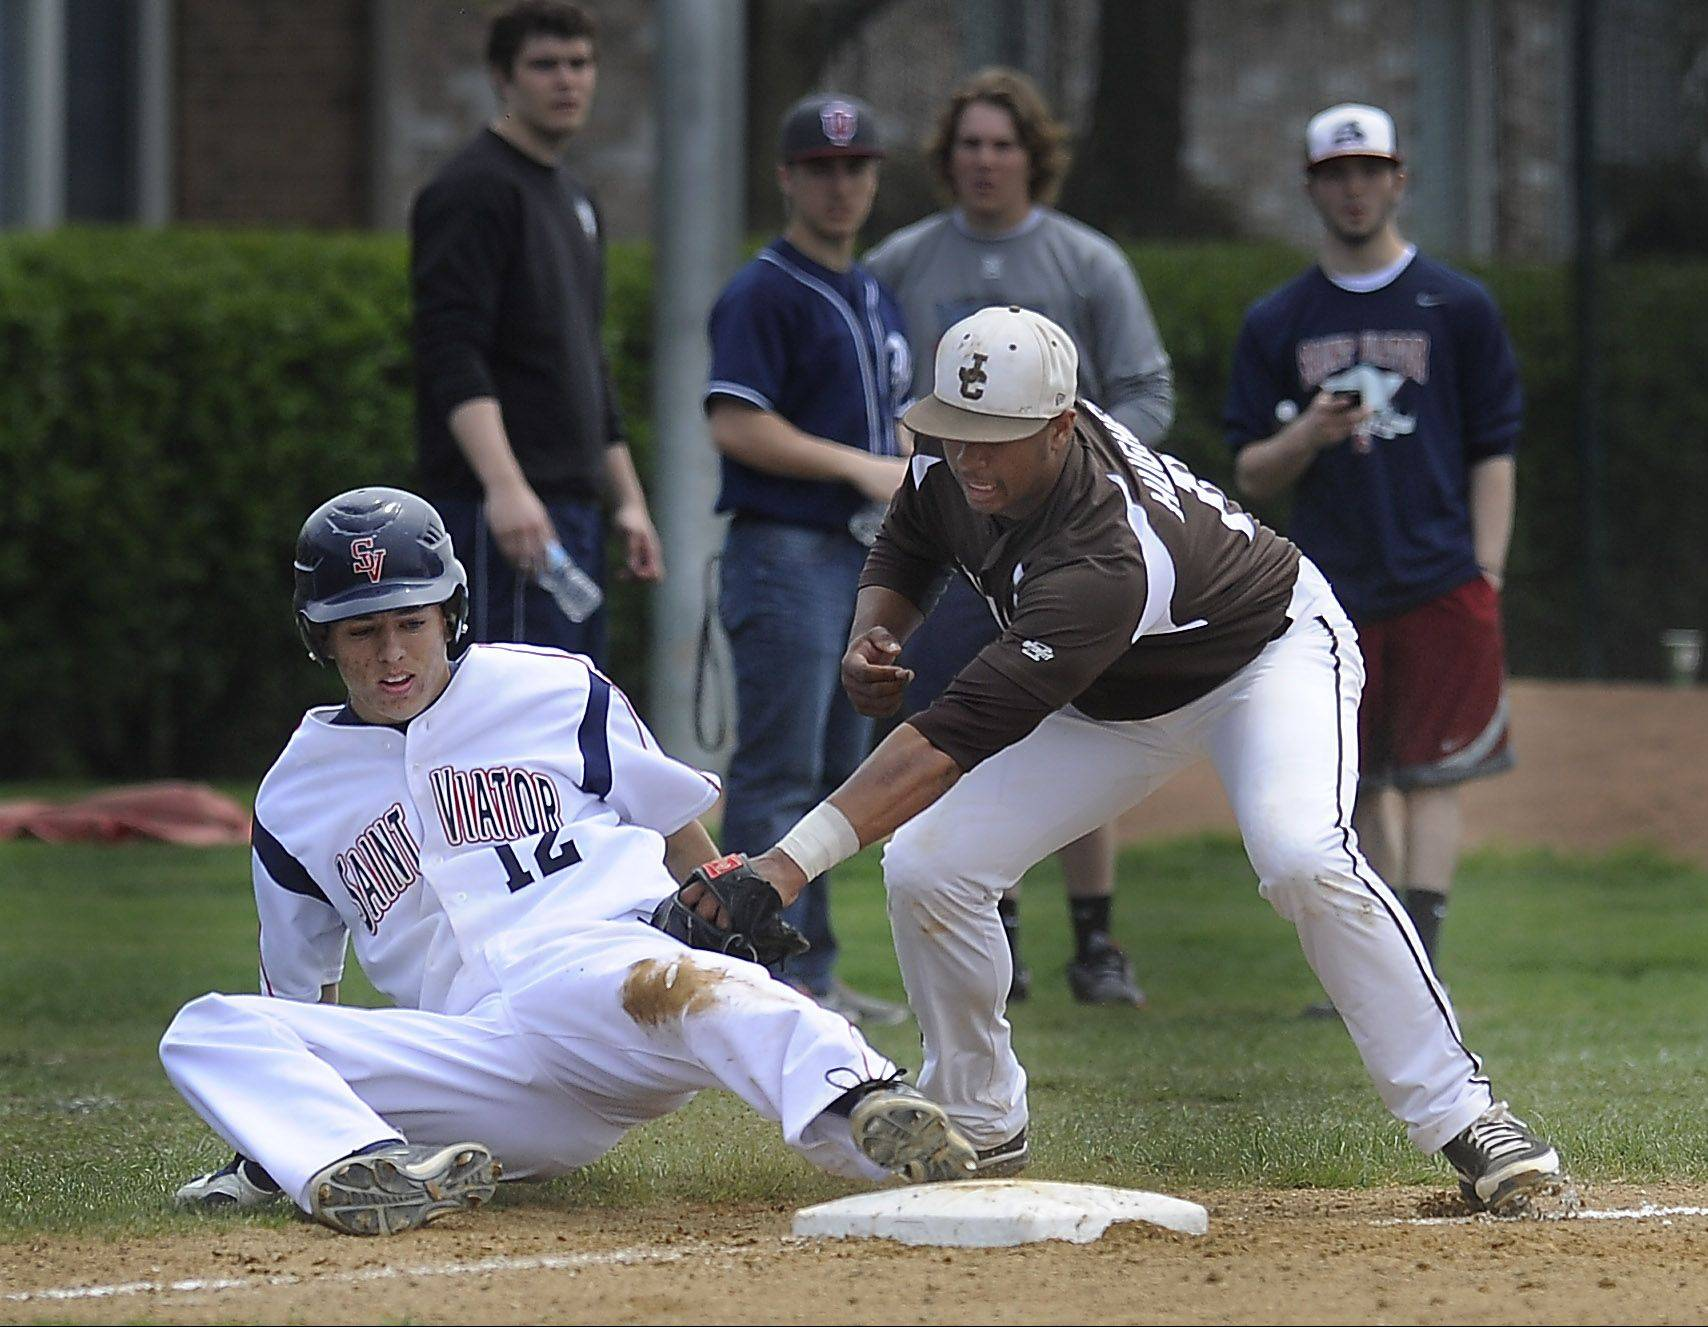 St. Viator's Andrew Ferrante is called out at third base in the bottom of the third inning as the tag is applied by Joliet Catholic's Ira Hughes in game one of doubleheader action at St. Viator on Saturday.